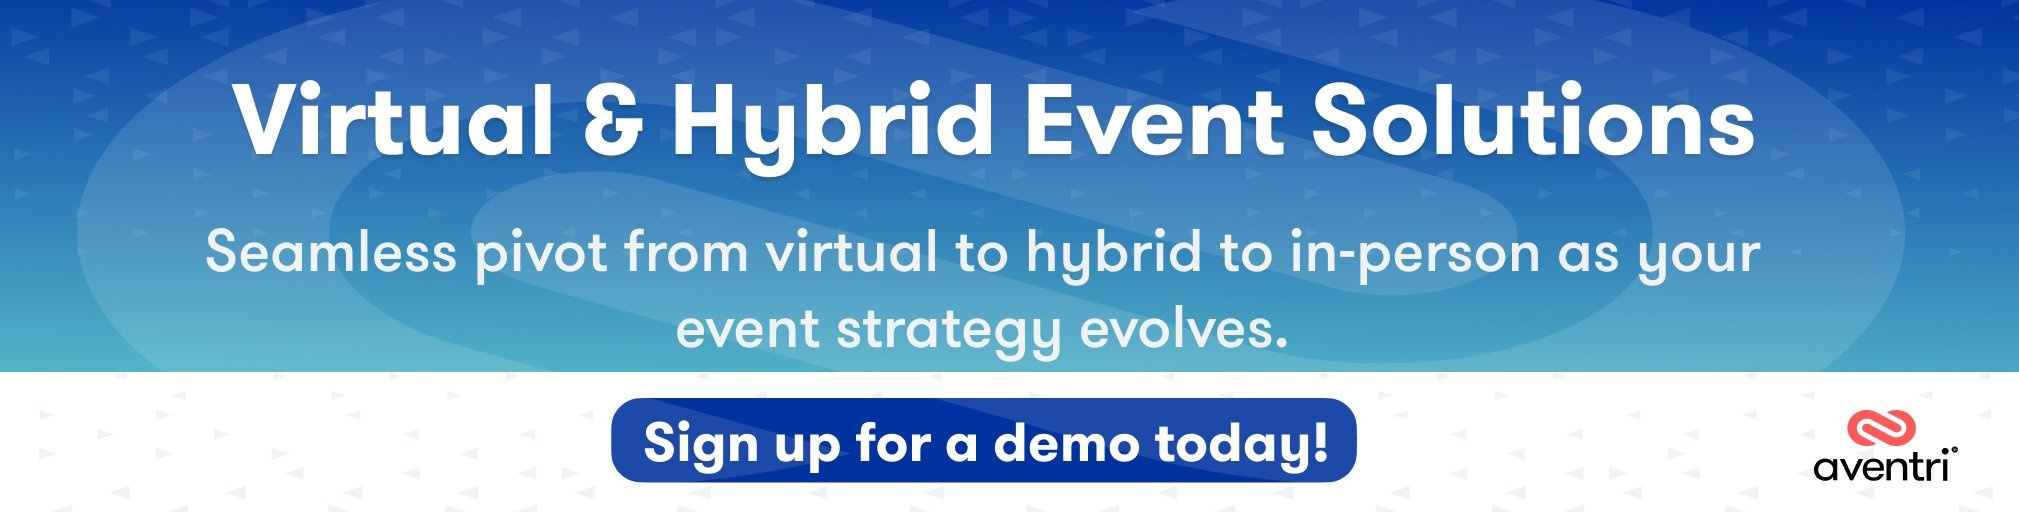 Aventri's virtual and hybrid event solutions